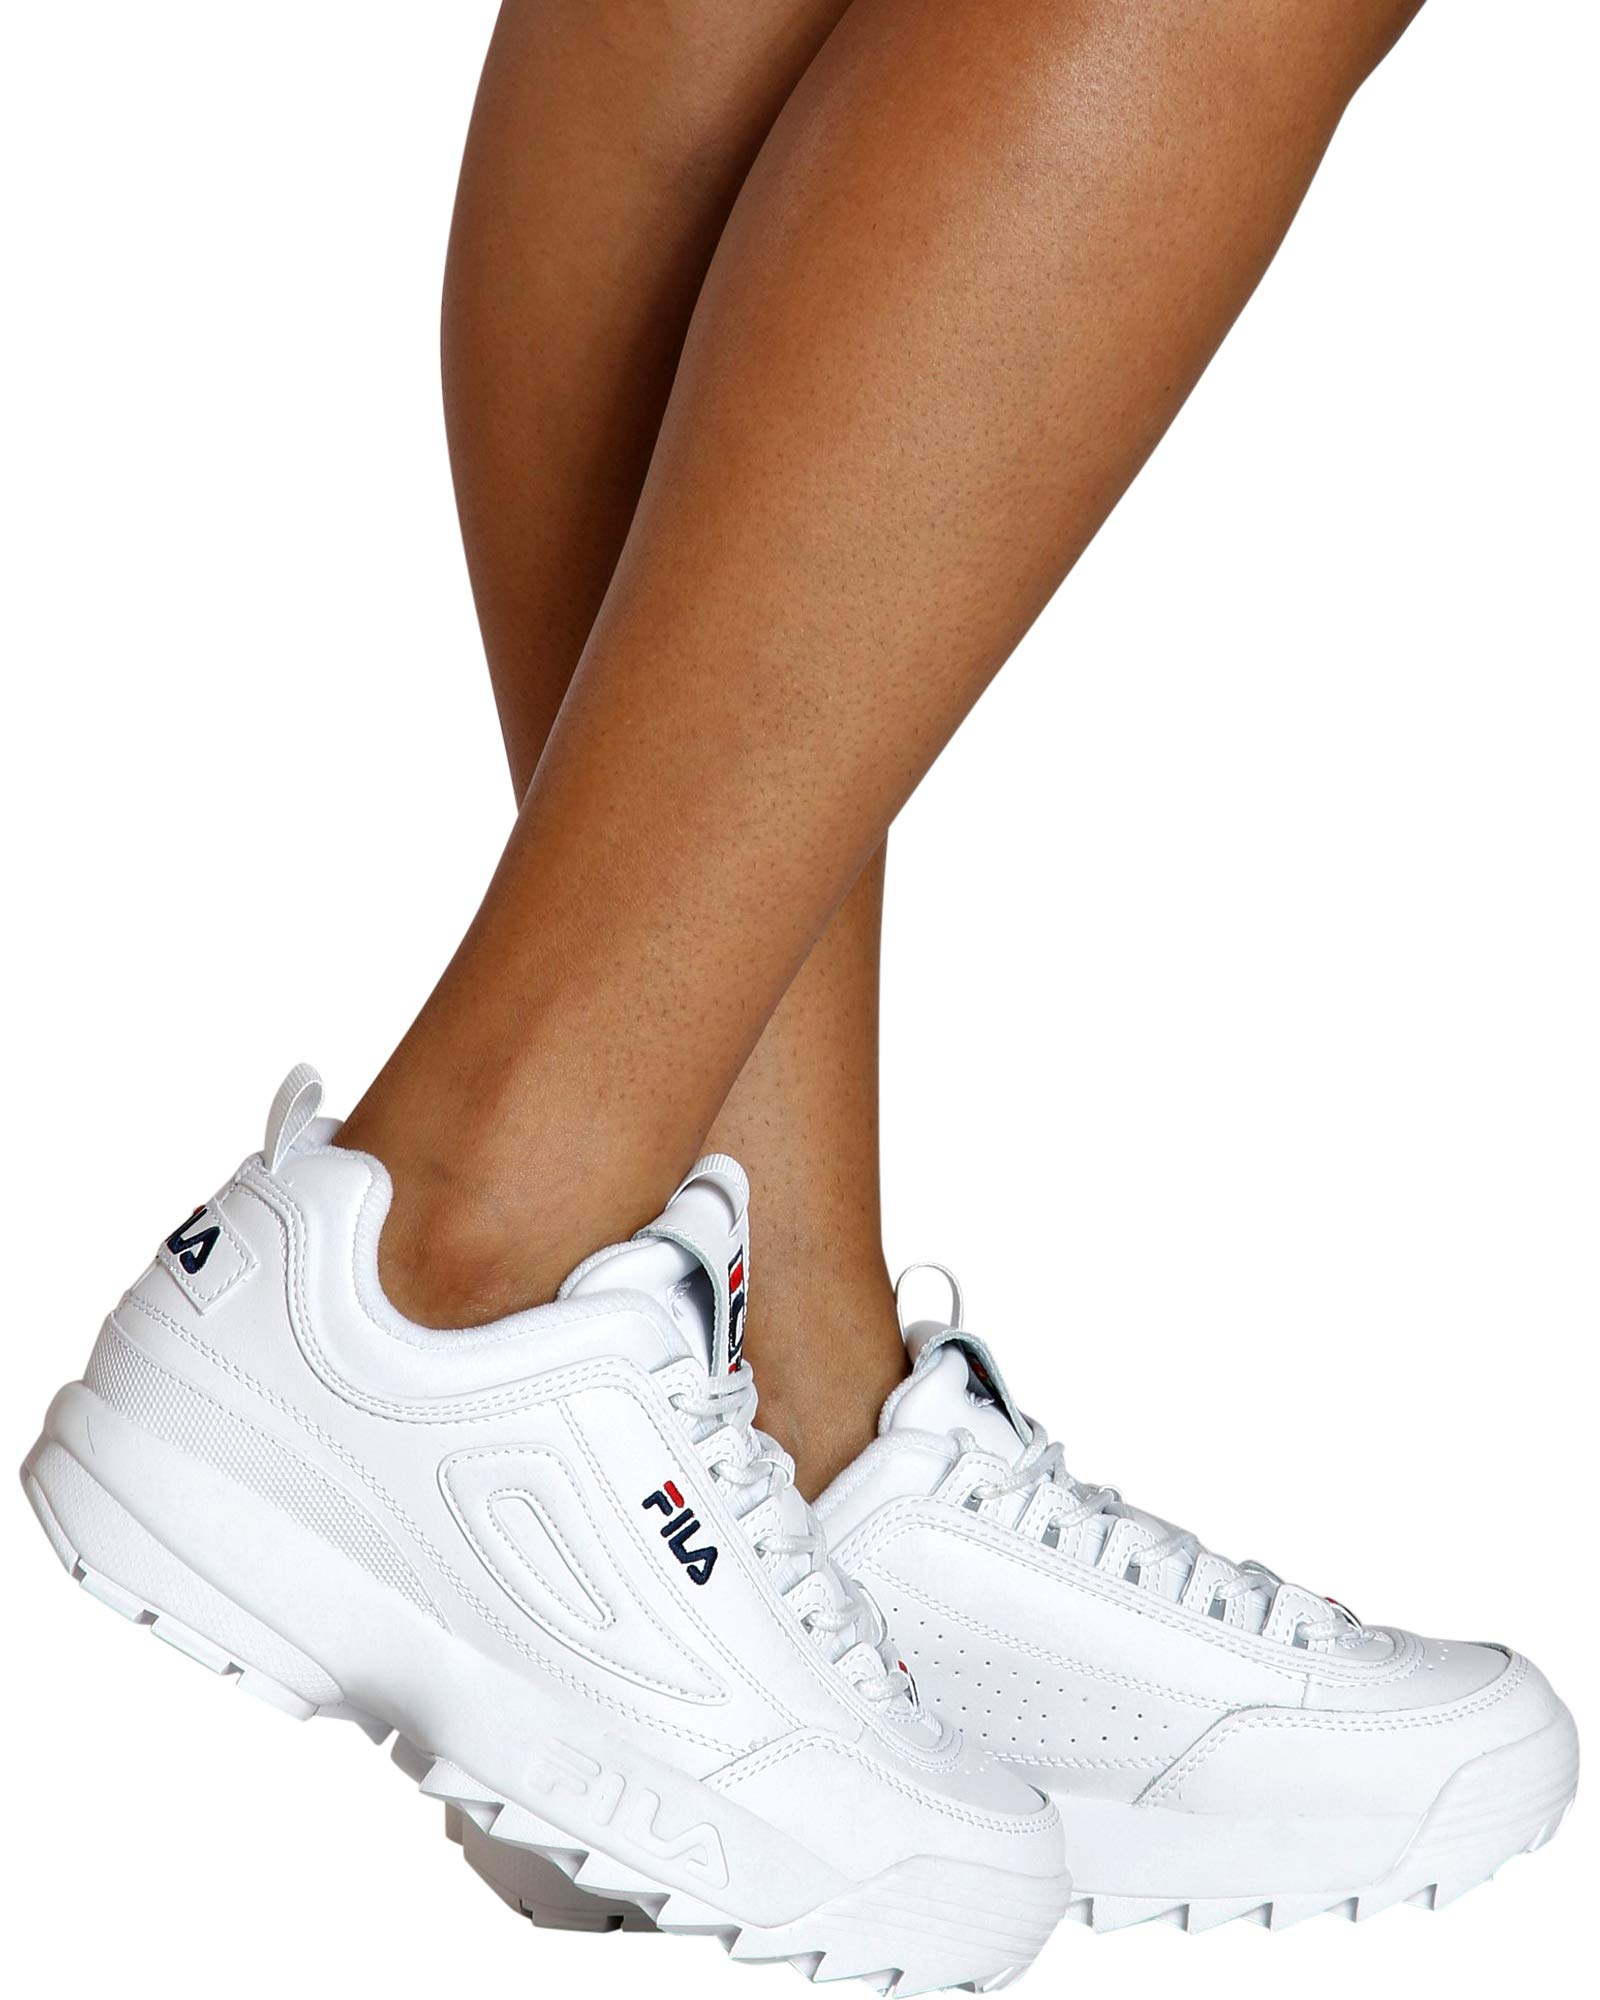 Fila Women's Disruptor II Premium Sneakers, White/Fila Navy/Fila Red, 7.5 M US